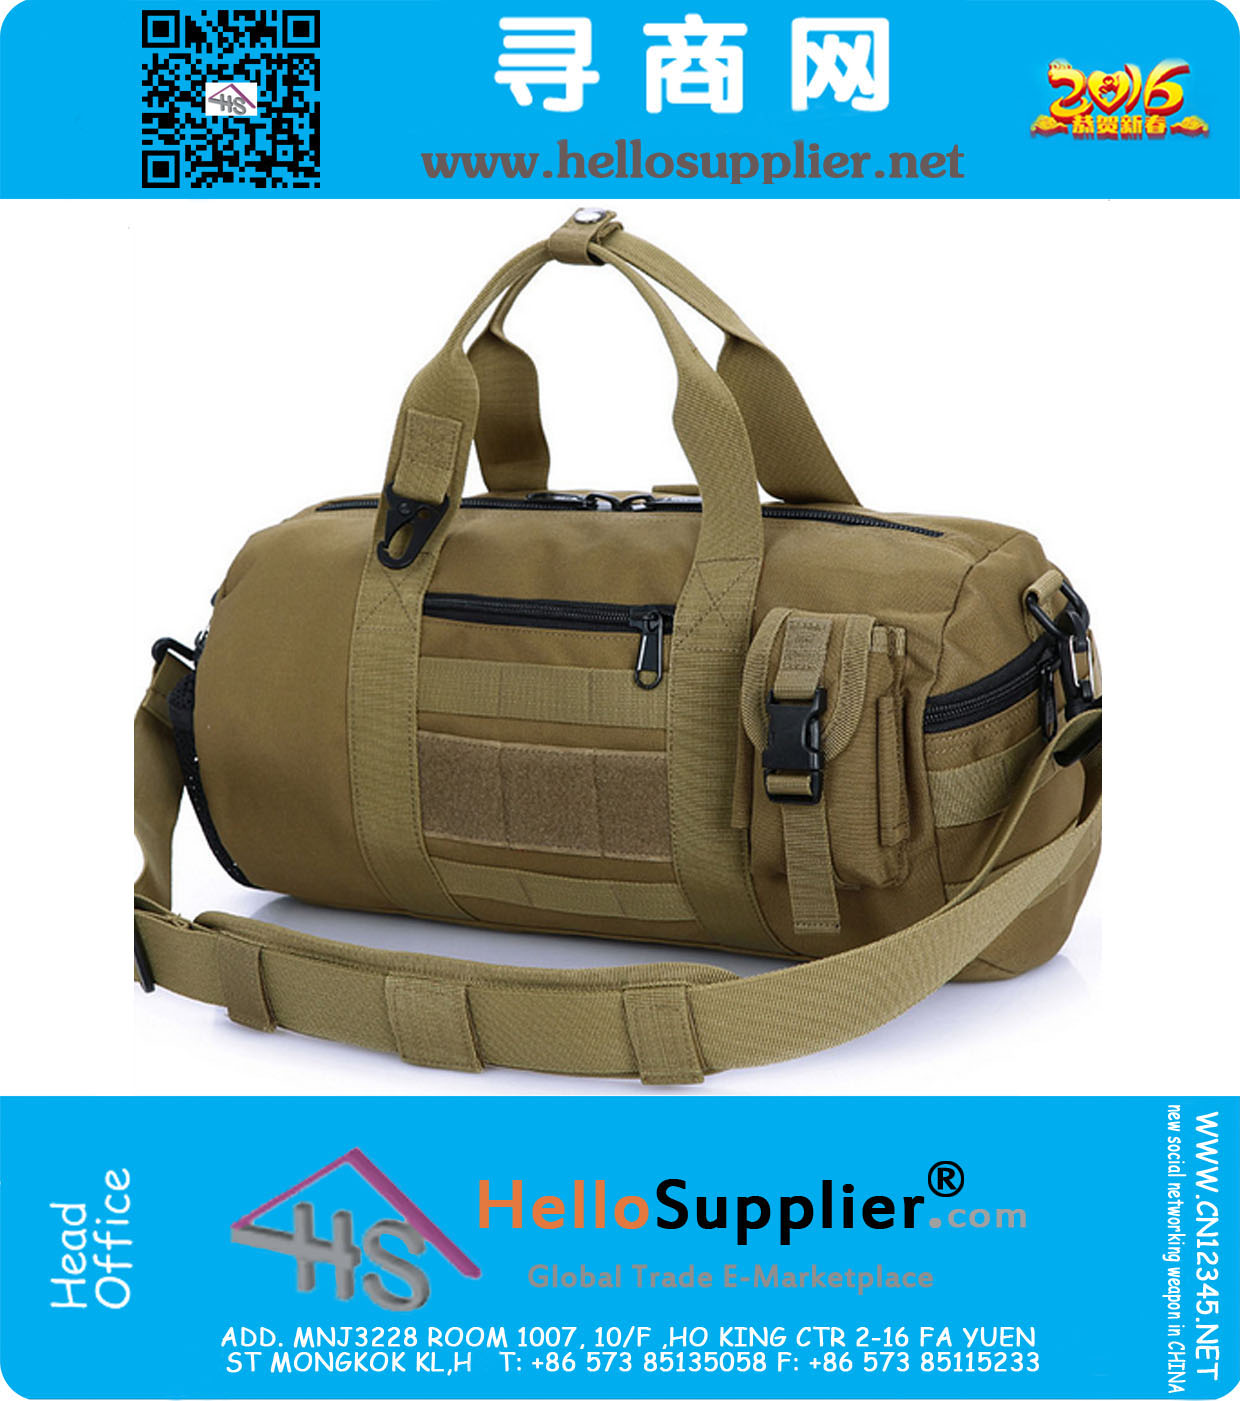 515570c768 Tactical Duffel Bag Army Military Travel Bag Cylinder Duffle Bag Hiking  Camping Tactical Bag